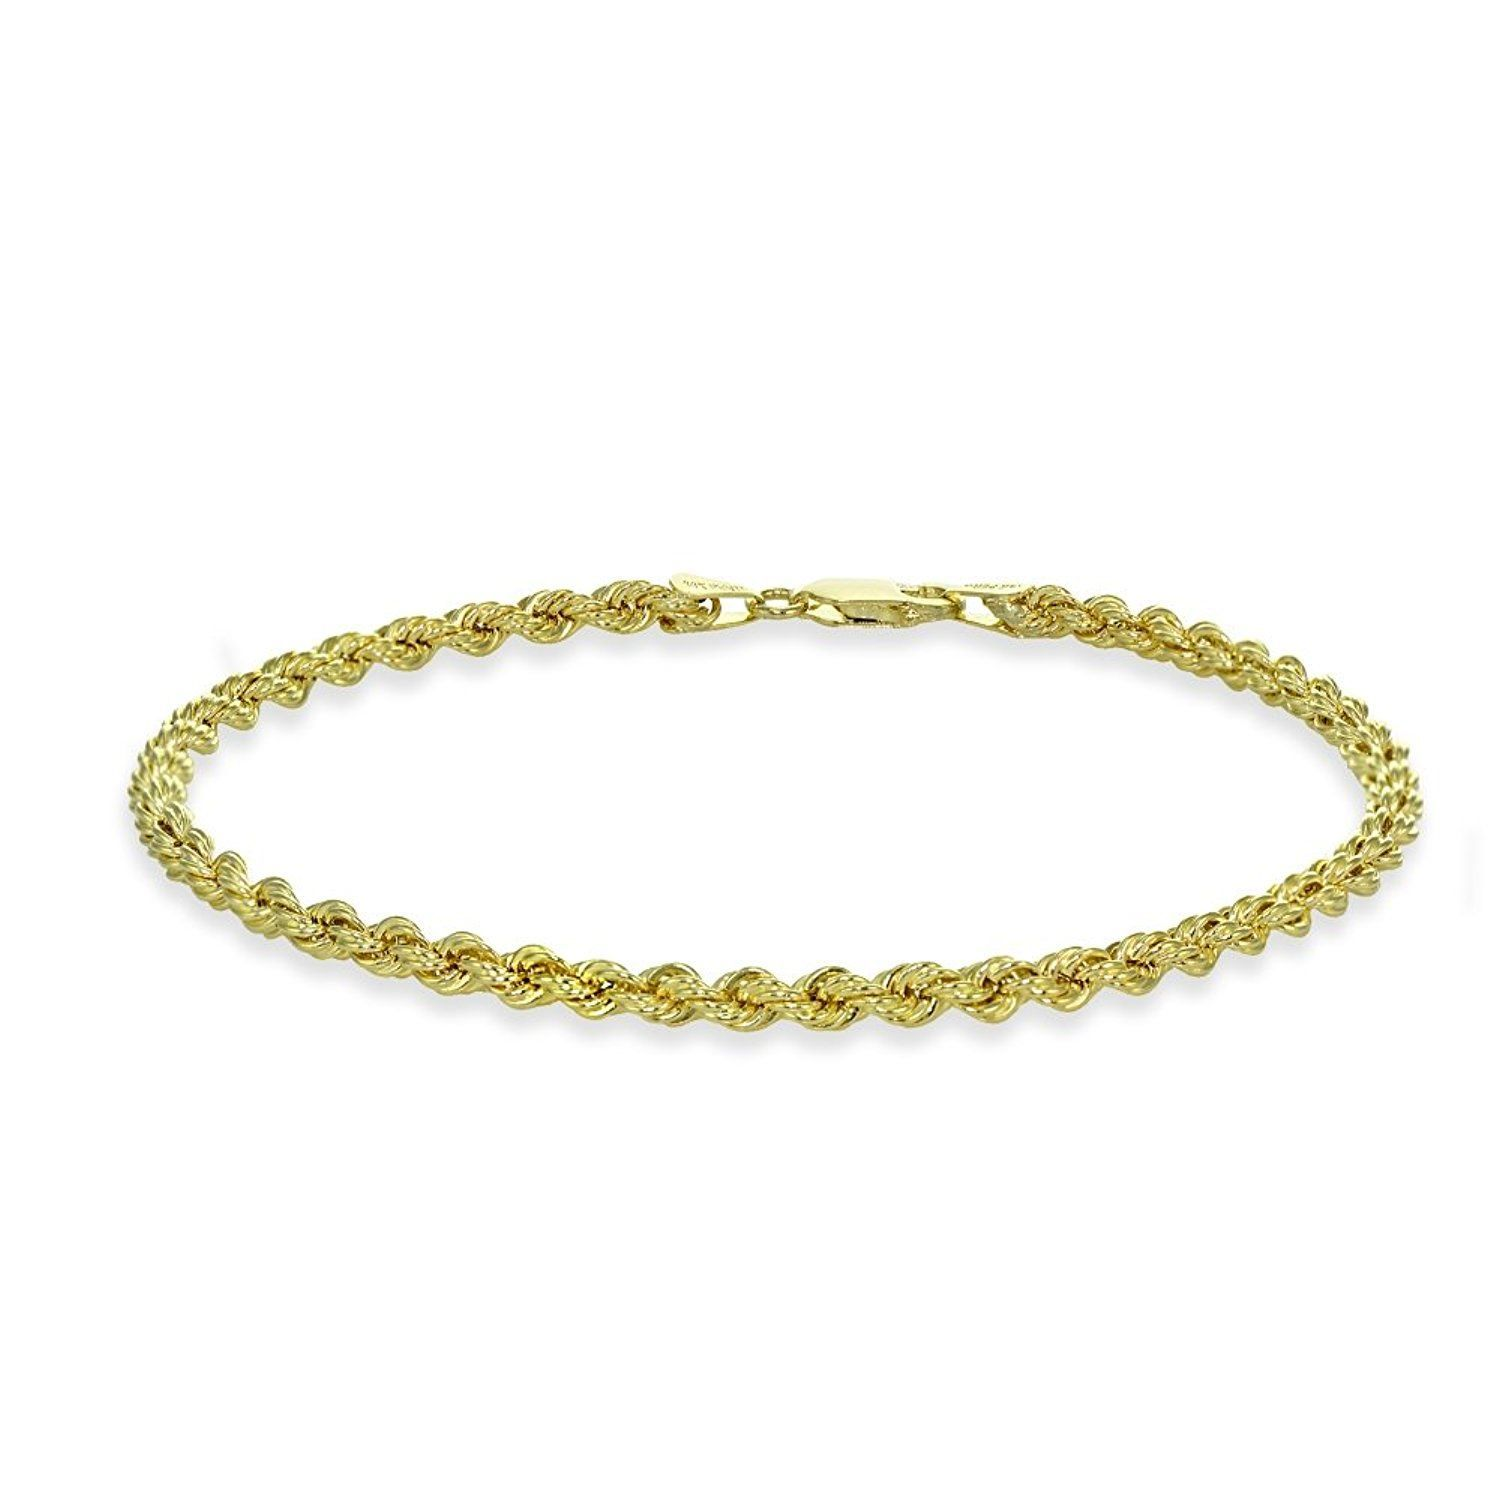 K yellow gold mm hollow twist rope chain bracelet anklet or